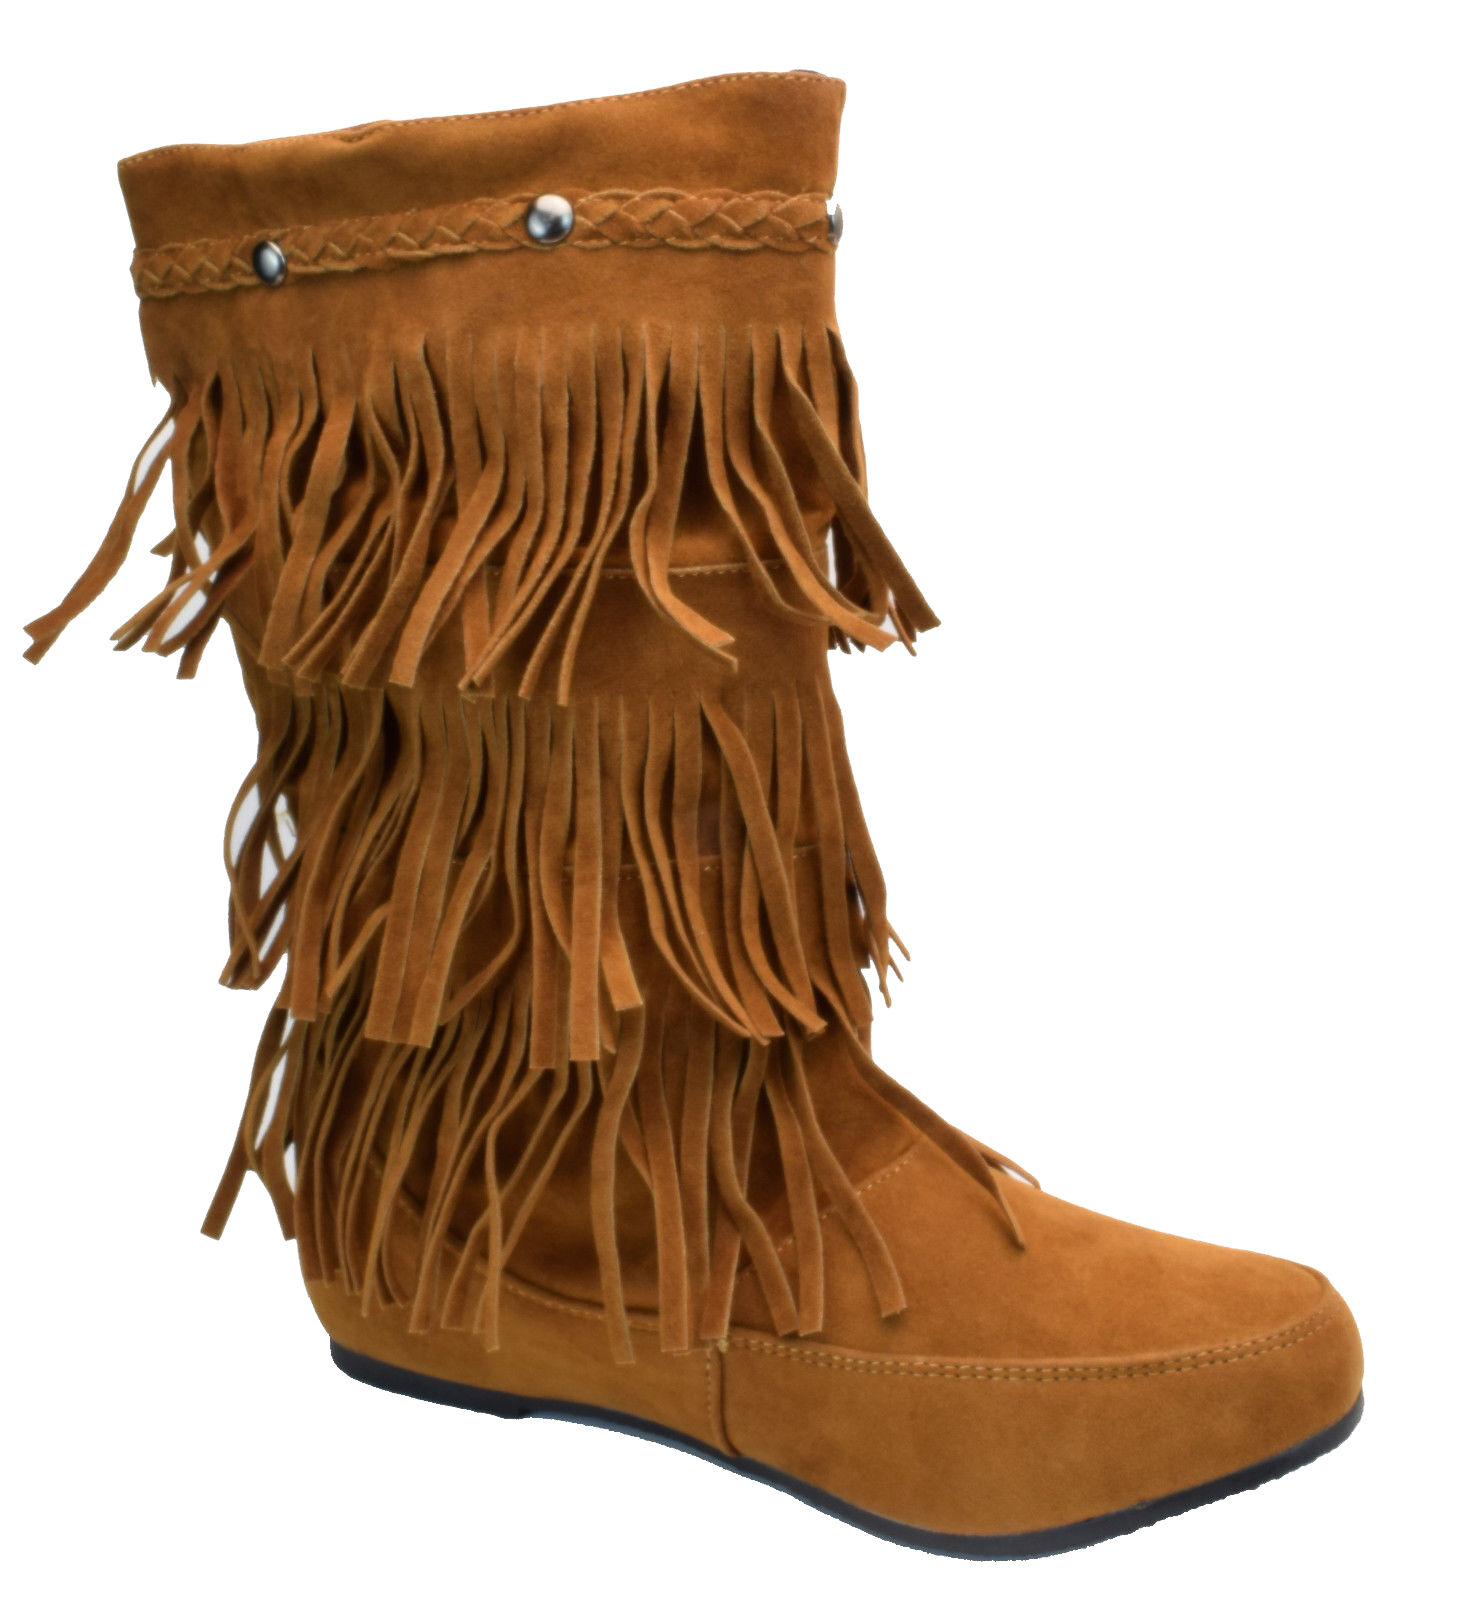 Womens Mid Calf Fringe Boots Chestnut Brown Faux Suede 10  Shaft